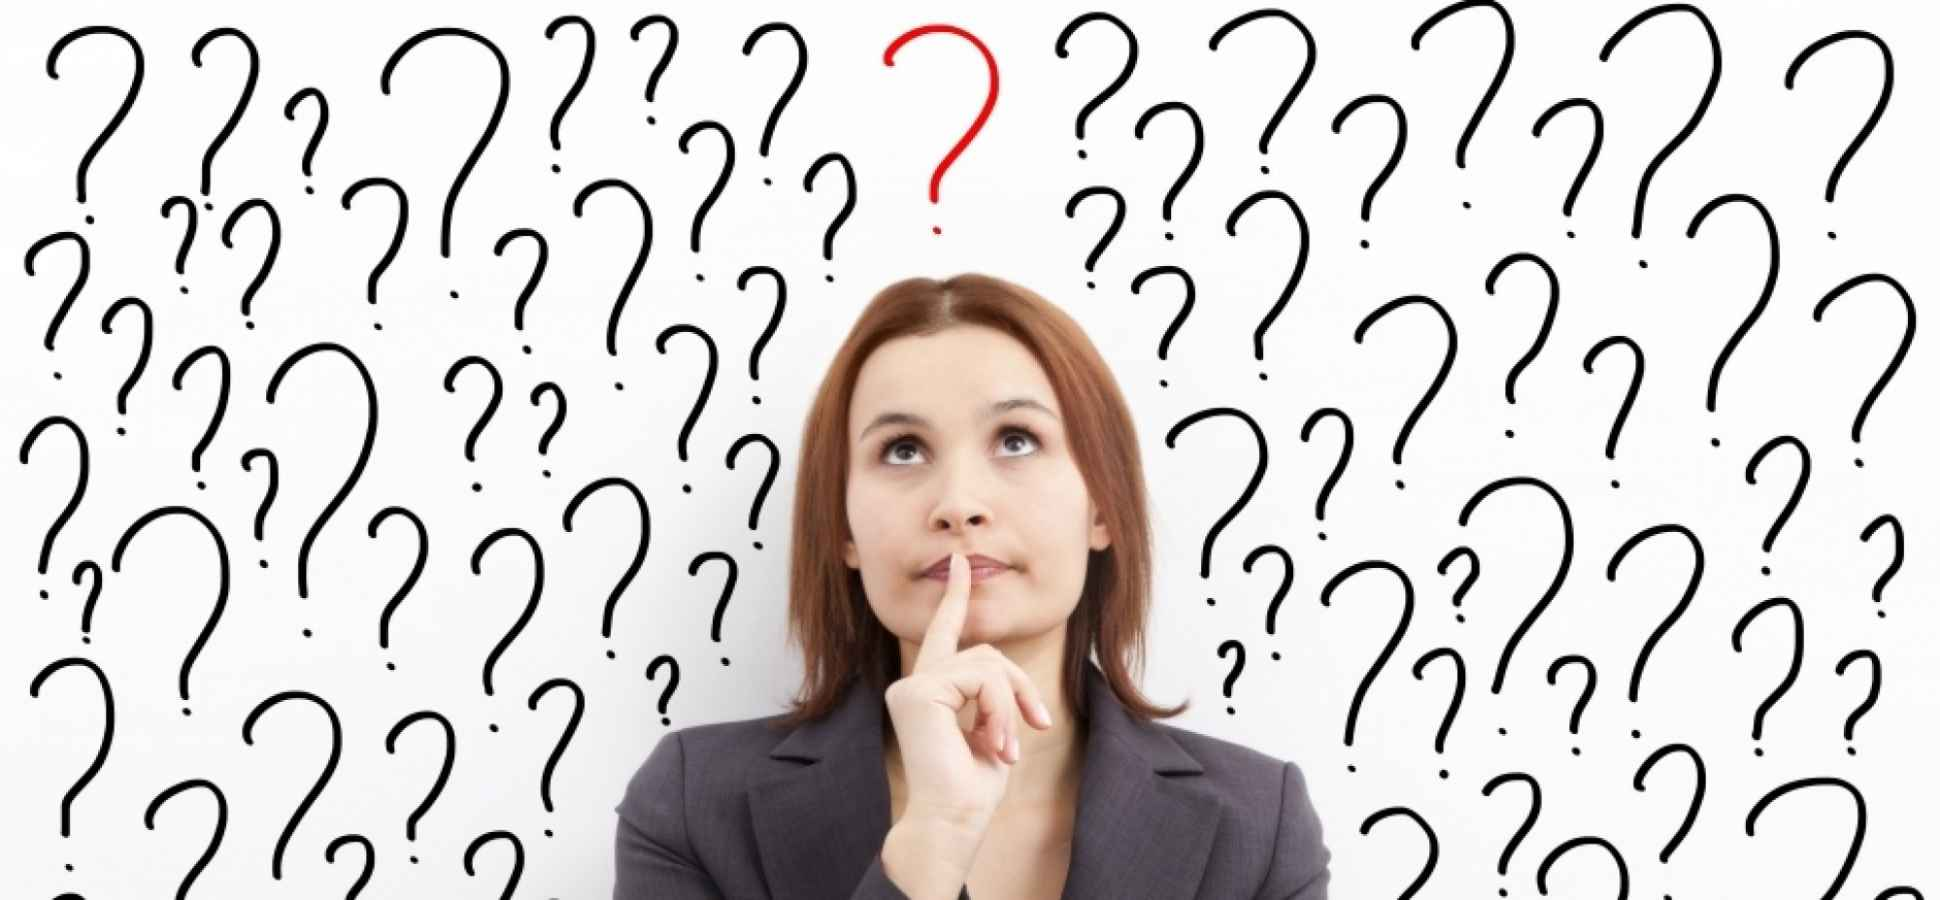 5 Questions to Ask Before Starting a Business